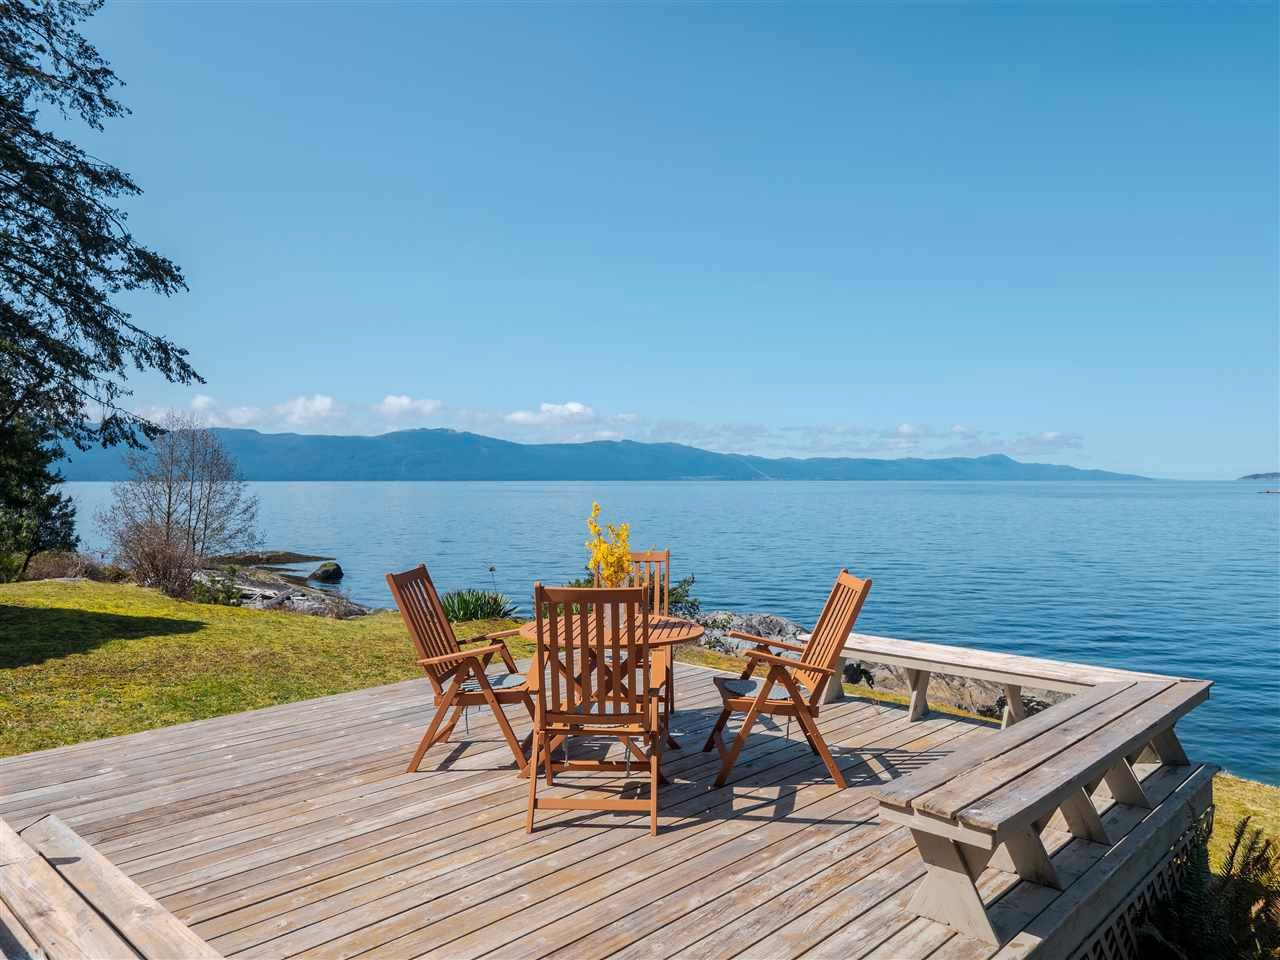 Main Photo: 3941 FRANCIS PENINSULA Road in Madeira Park: Pender Harbour Egmont House for sale (Sunshine Coast)  : MLS®# R2562951